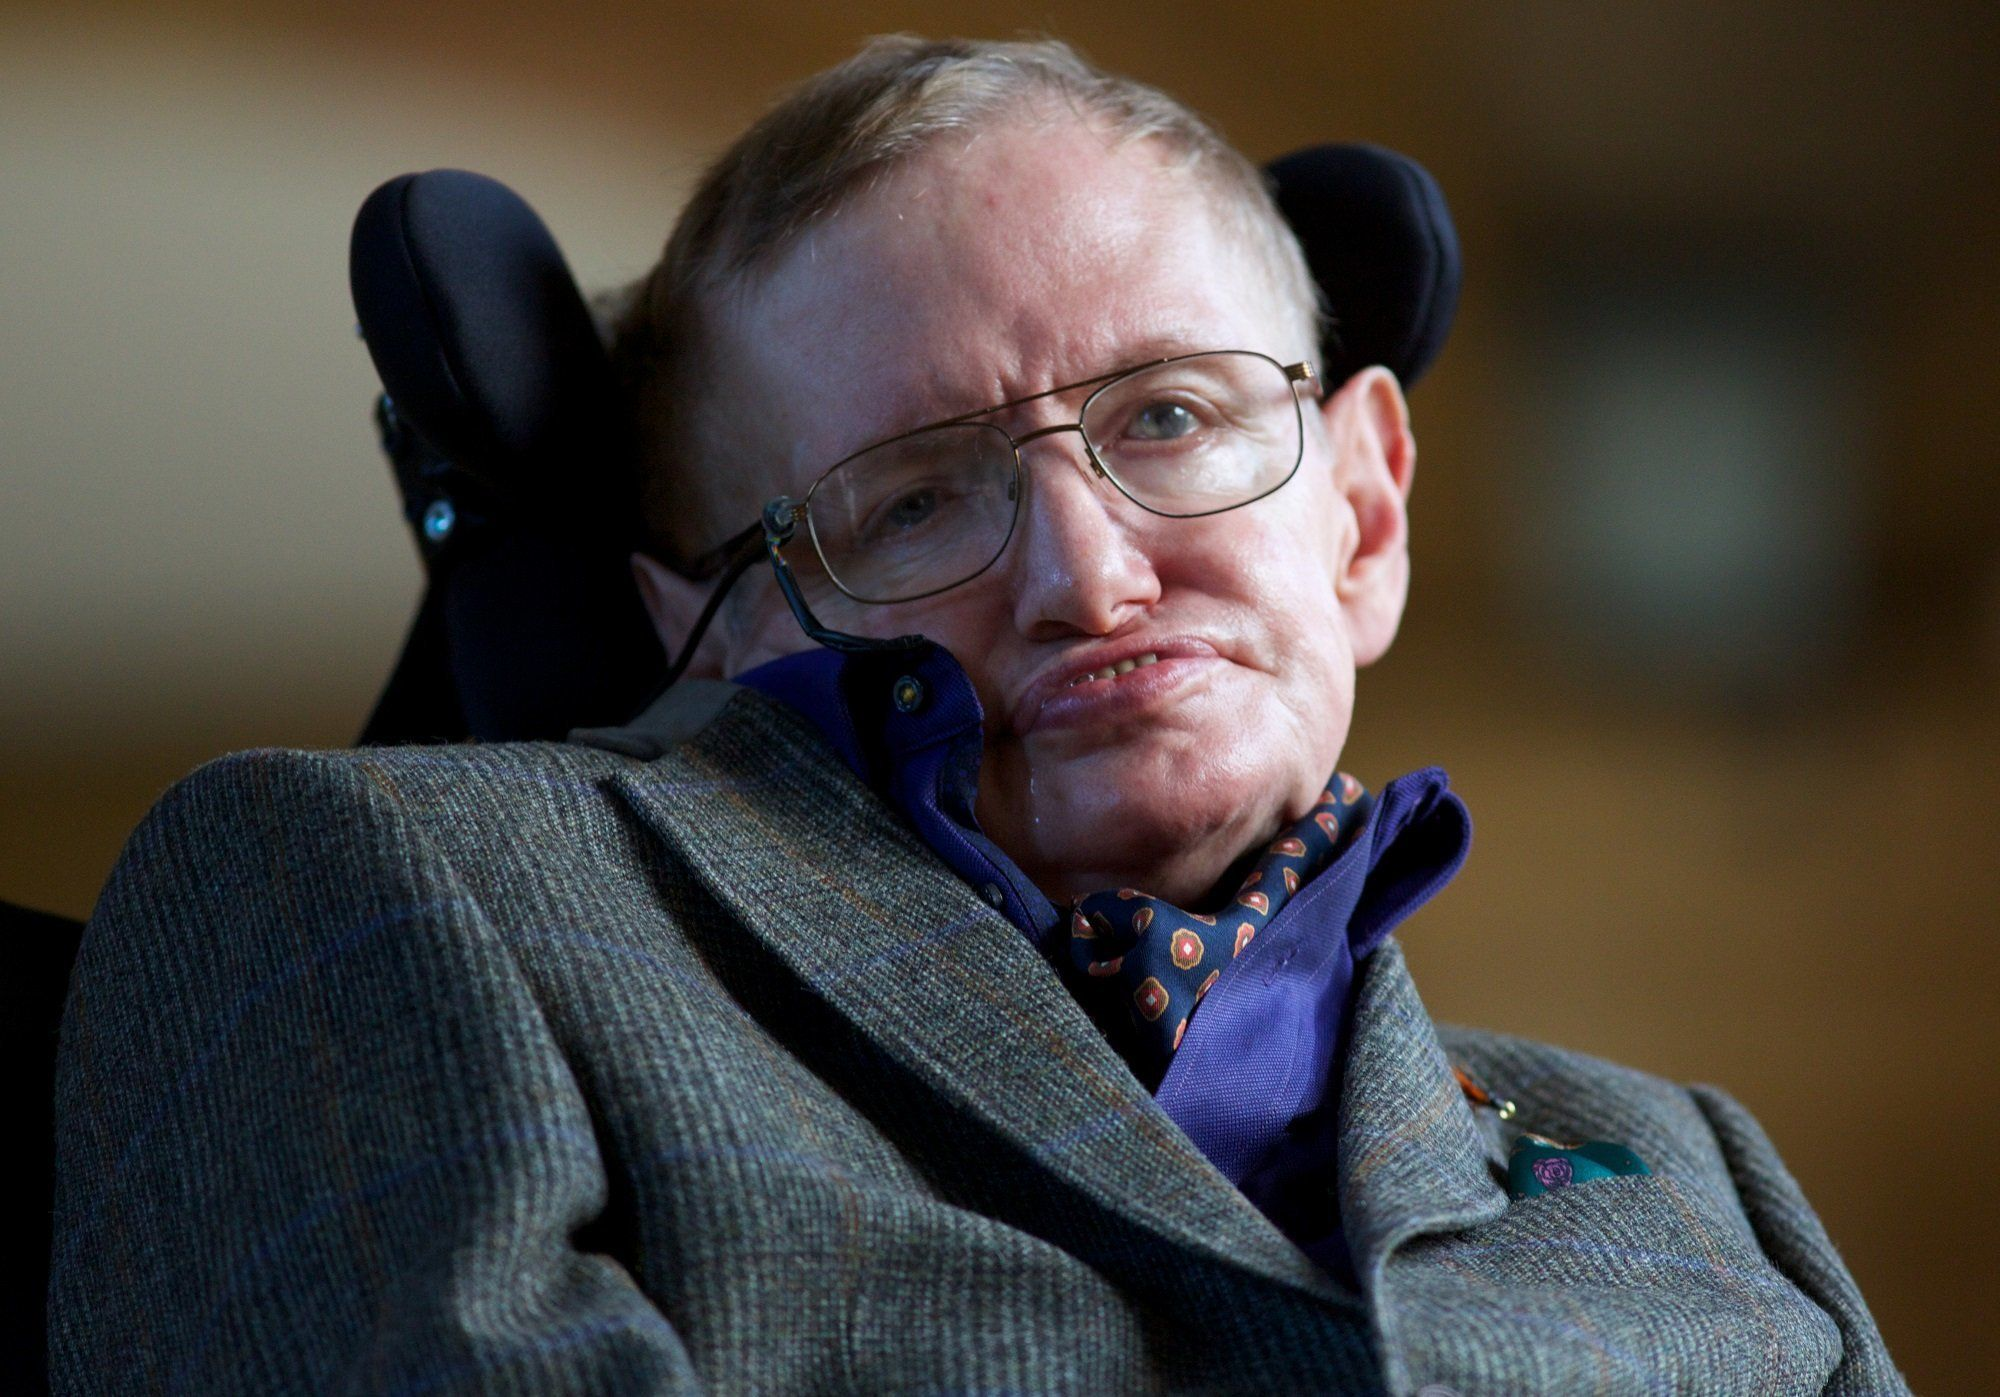 Stephen Hawking feared intelligent machines could destroy humans with weapons 'we cannot even understand'